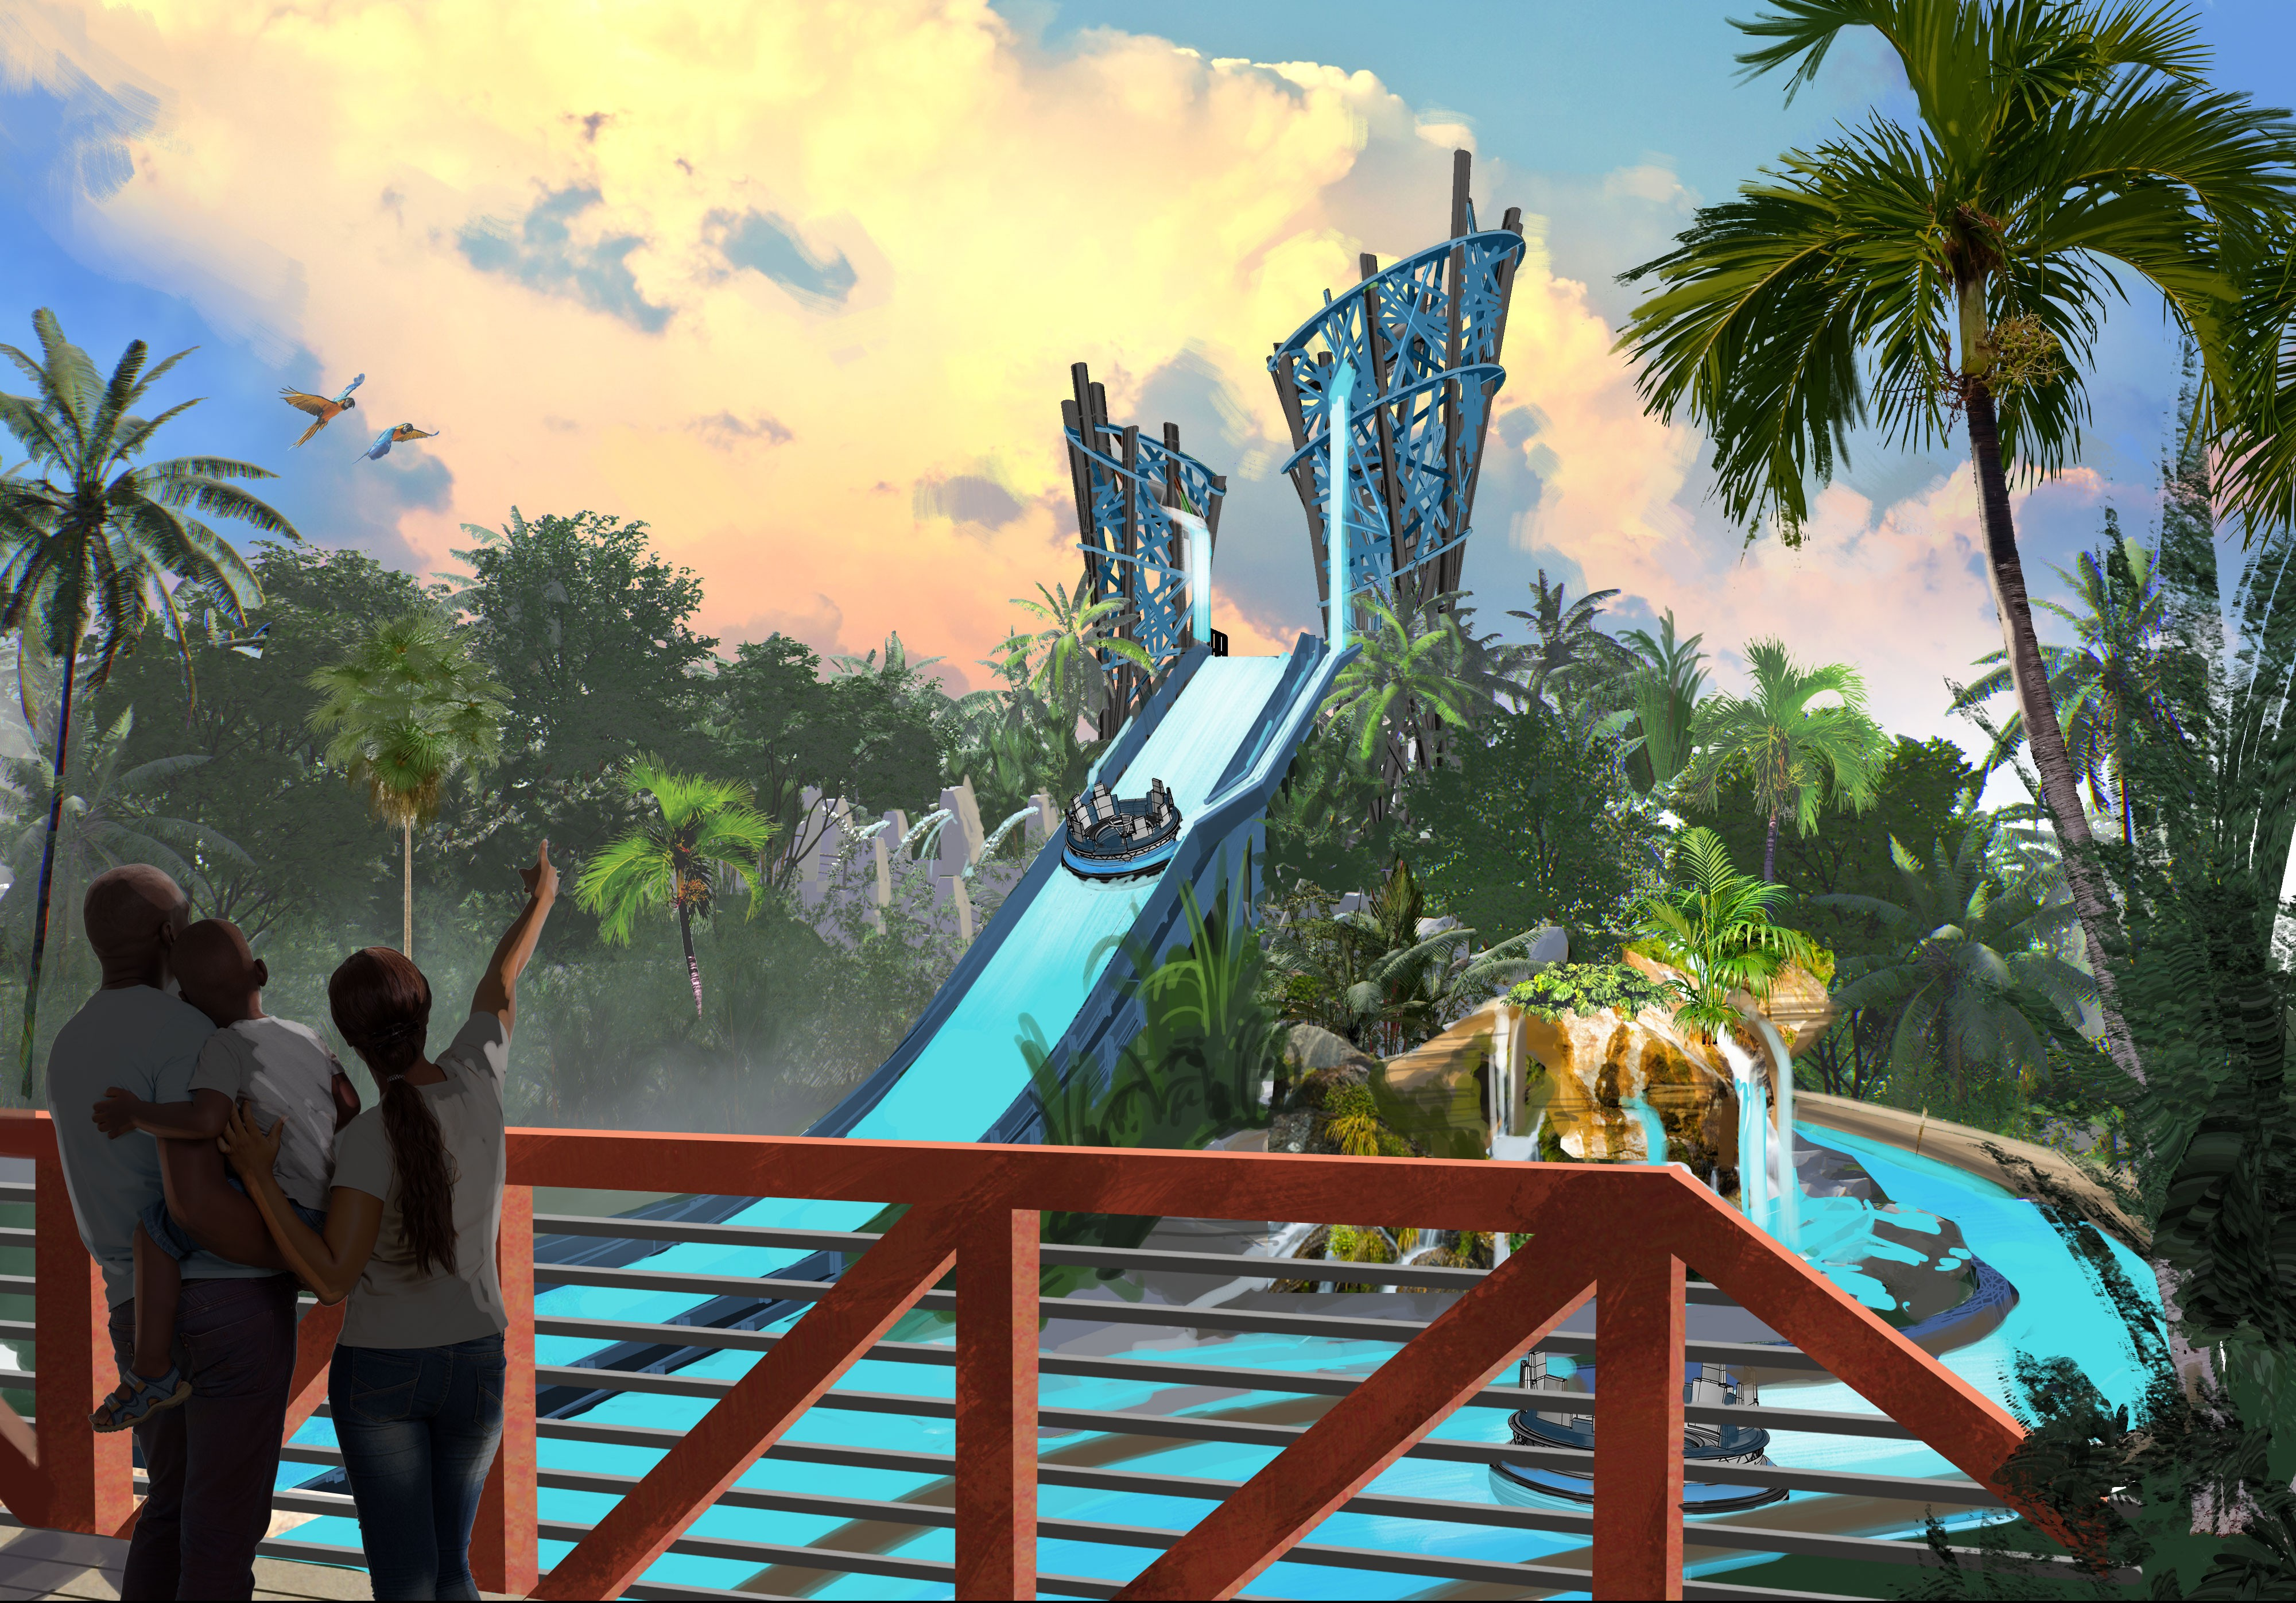 SeaWorld goes all in with new high-tech raft ride but will